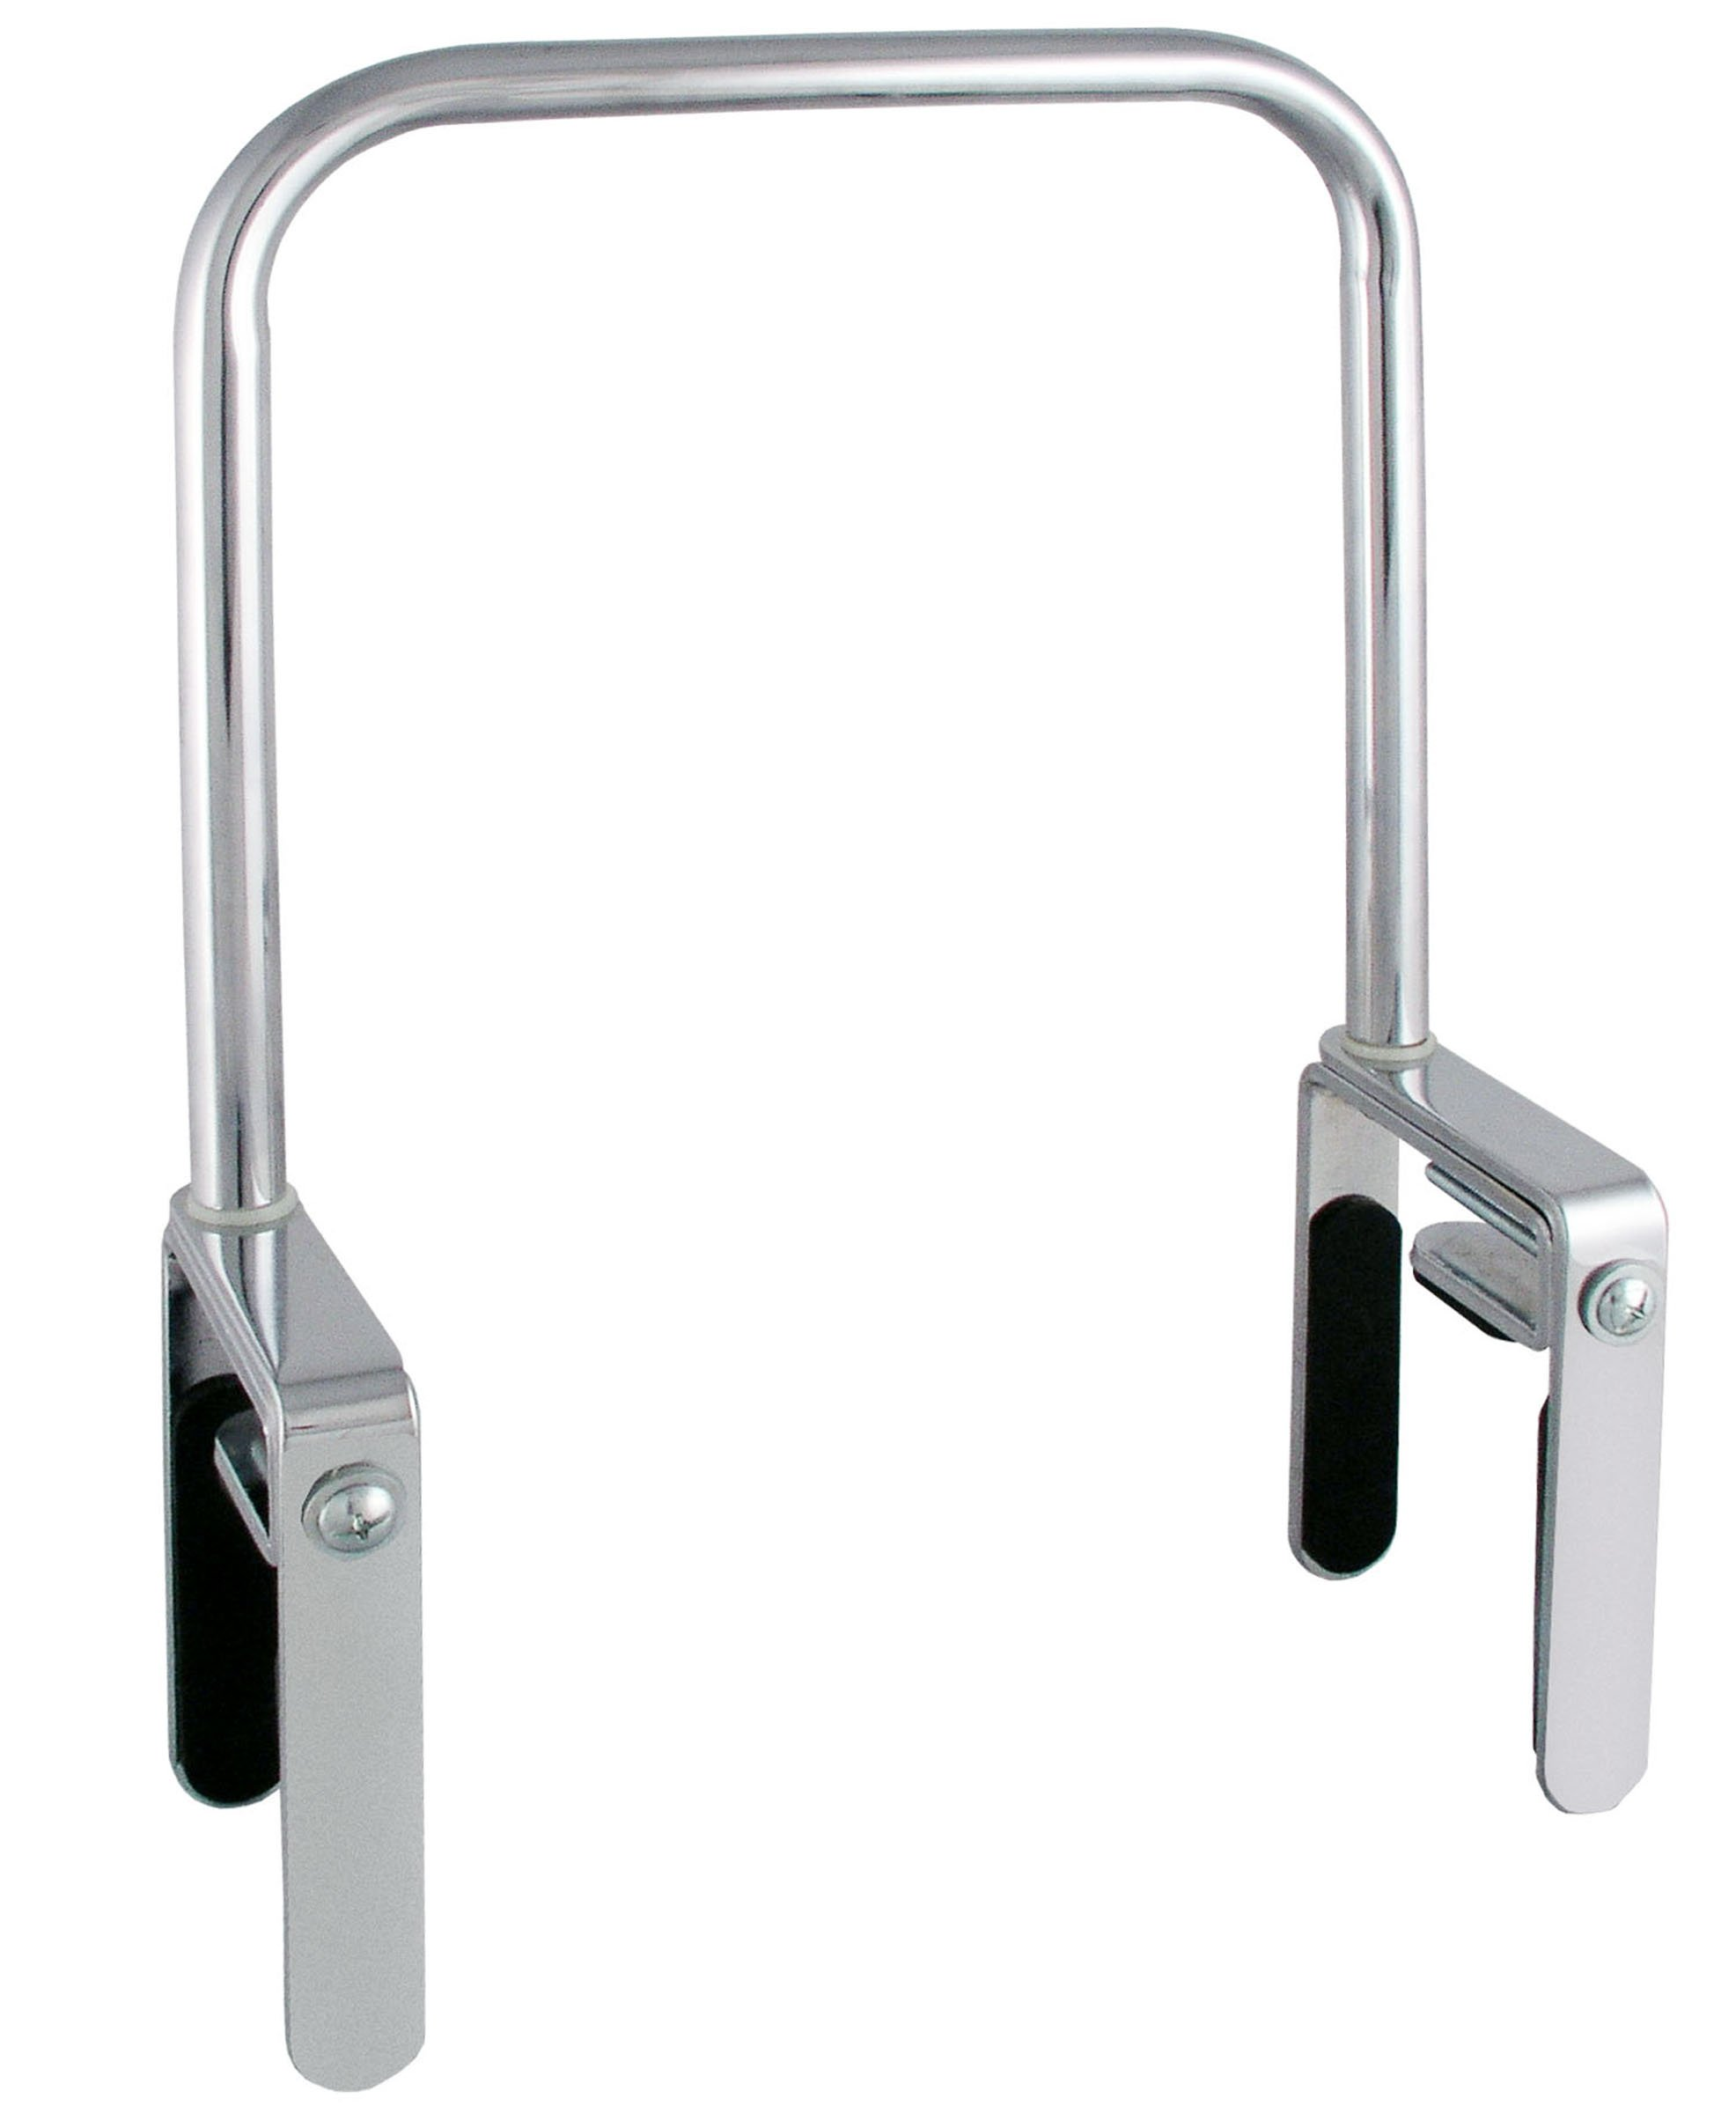 LDR 068 2008 11-Inch Bathtub Safety Bar, Chrome by LDR Industries